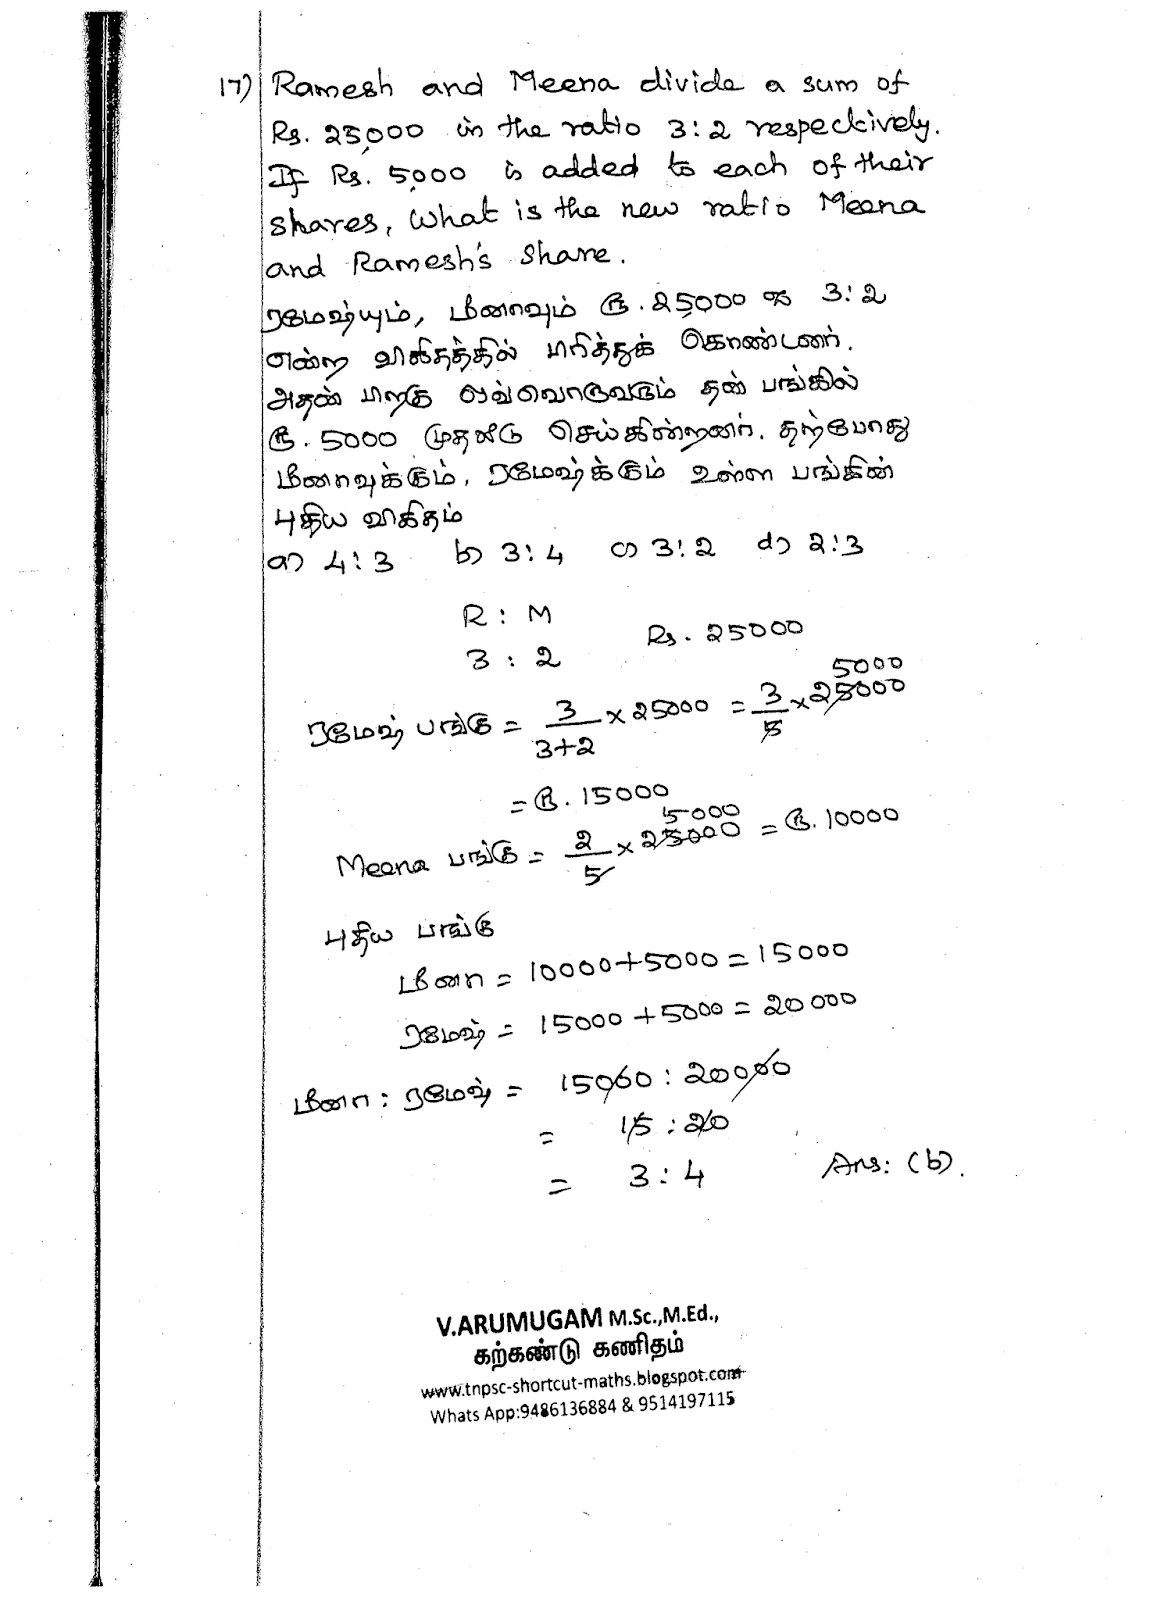 TNPSC – 2019 - Assistant Director and Child Development Project Officer in the Department of Social Welfare and Nutritious Meal Programme included in Tamil Nadu General Service, 2018-2019 EXAM - EXAM DATE: 16.11.2019 & 17.11.2019. PAGE - 09/13